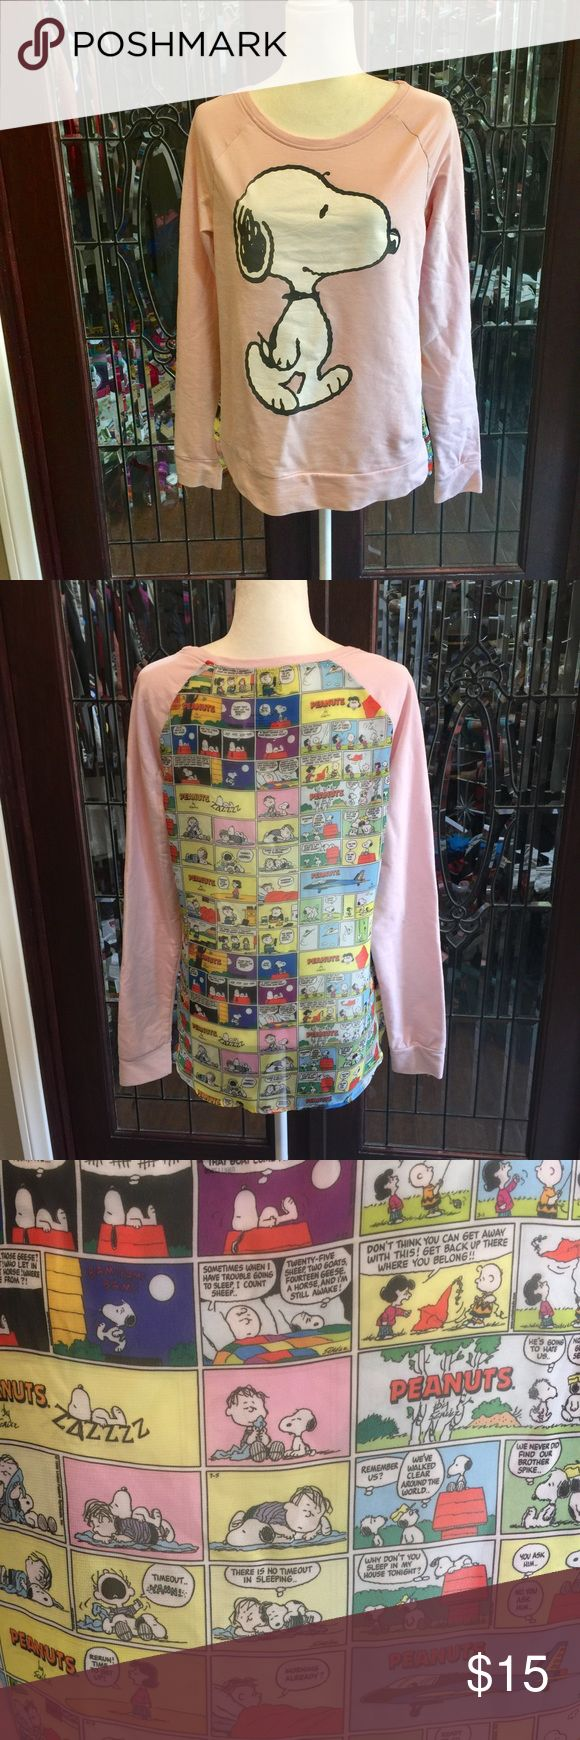 Peanuts Brand Comic Sweat Shirt with Snoopy!❤️ Peanuts Brand Comic Sweat Shirt - pale pink front with comic on the back. Super cute for the Snoopy lovers! Peanuts Tops Sweatshirts & Hoodies